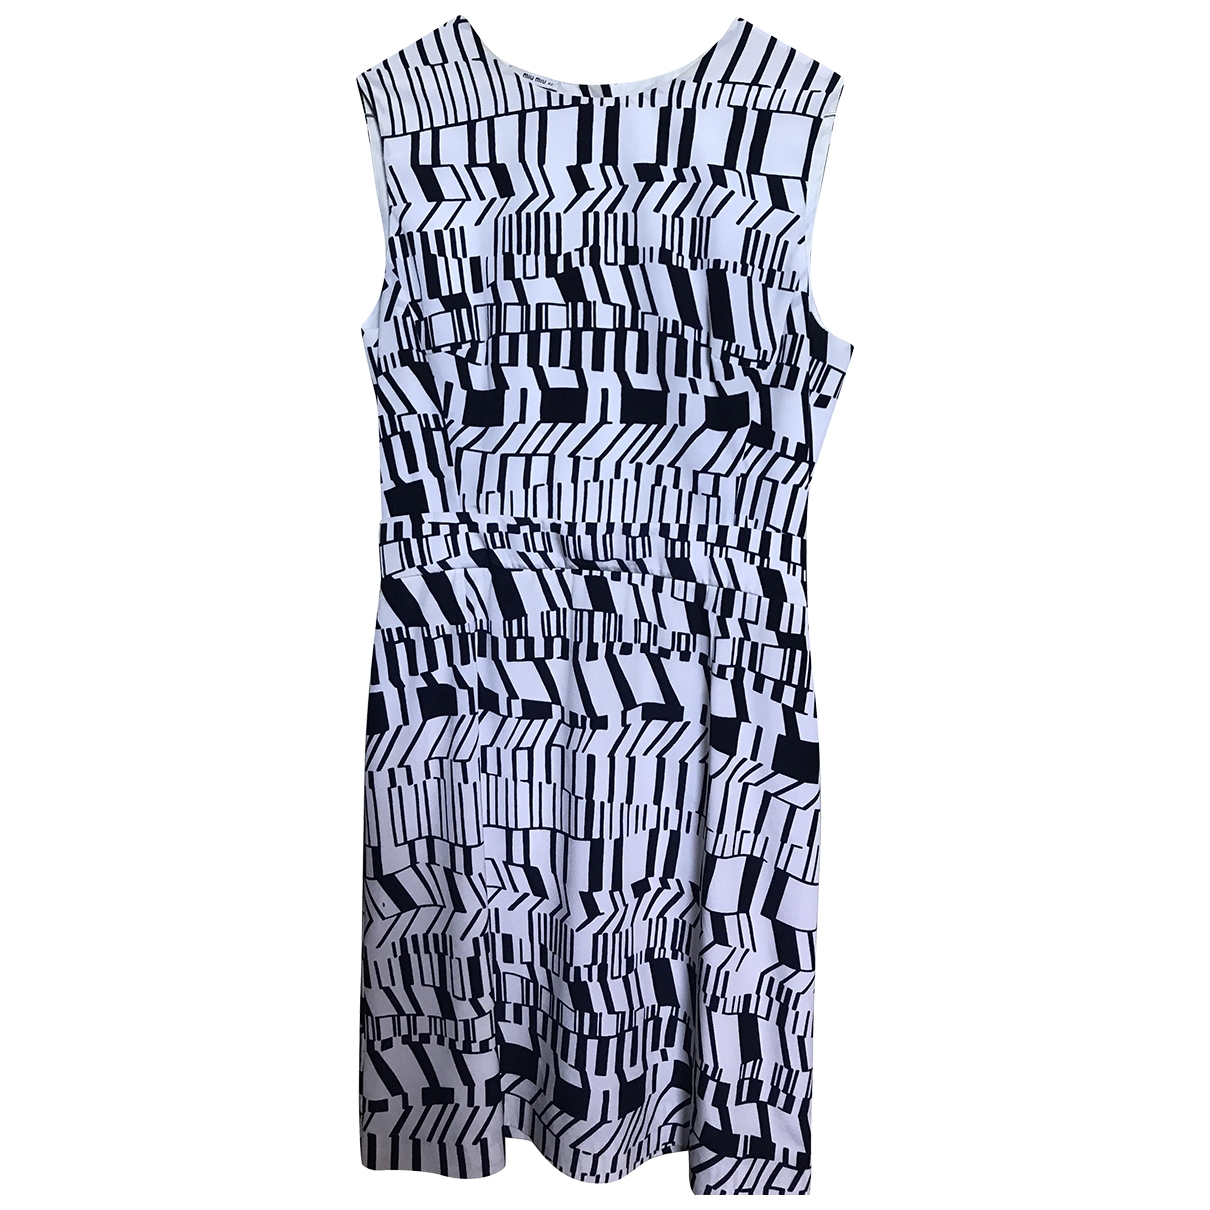 Miu Miu \N dress for Women 42 IT